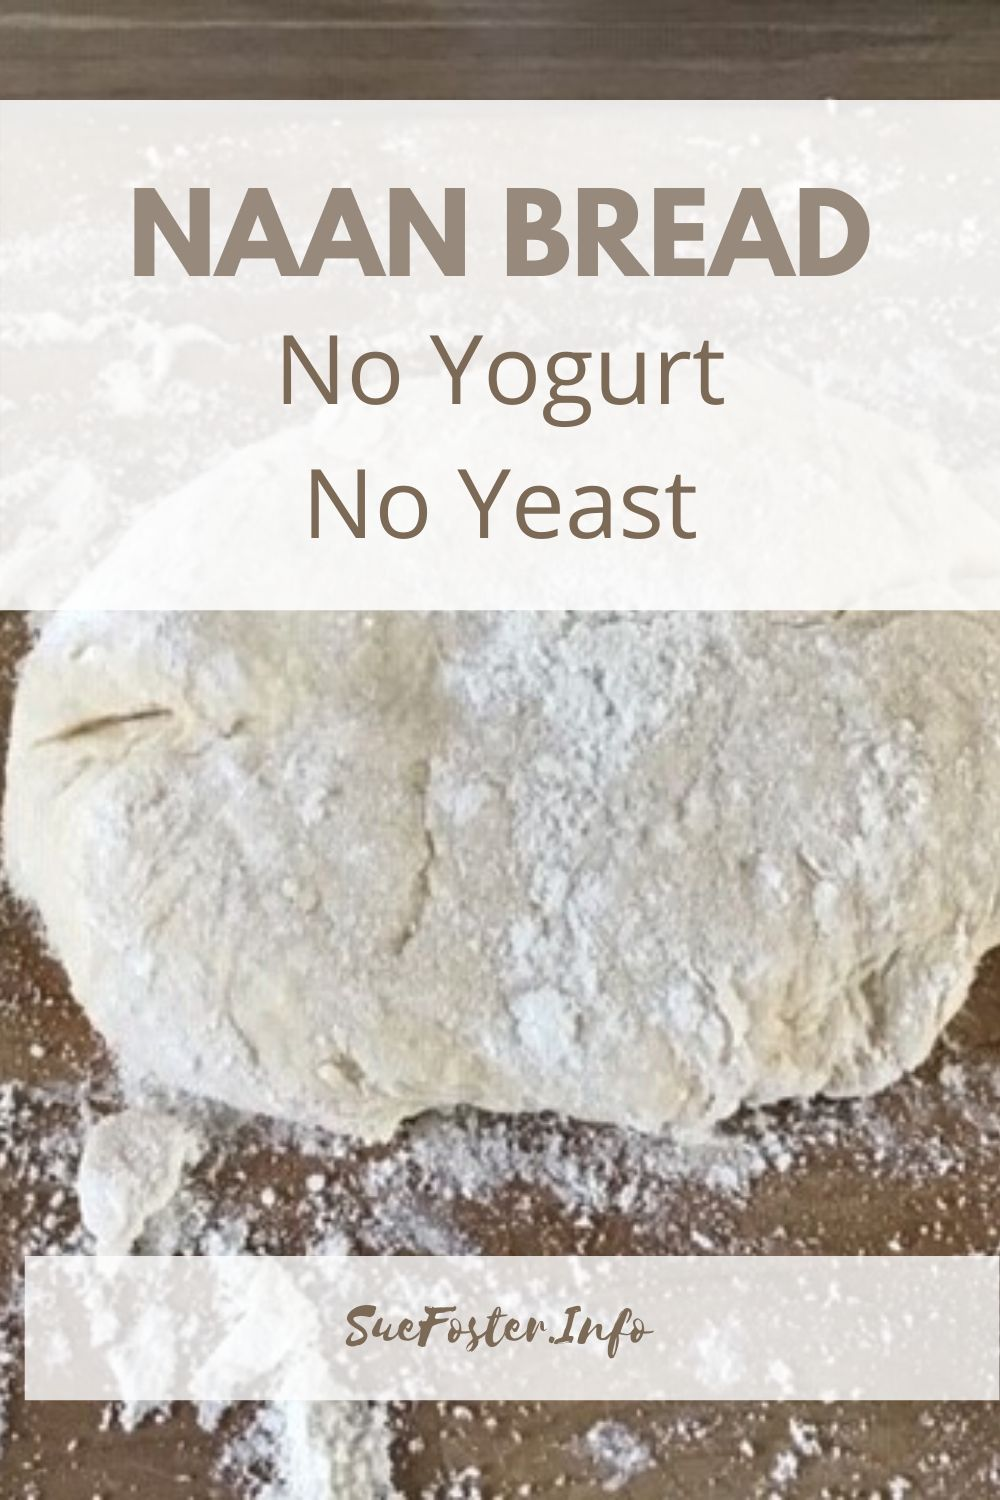 An easy naan bread for when you don't have many ingredients. Yogurt and yeast aren't needed.